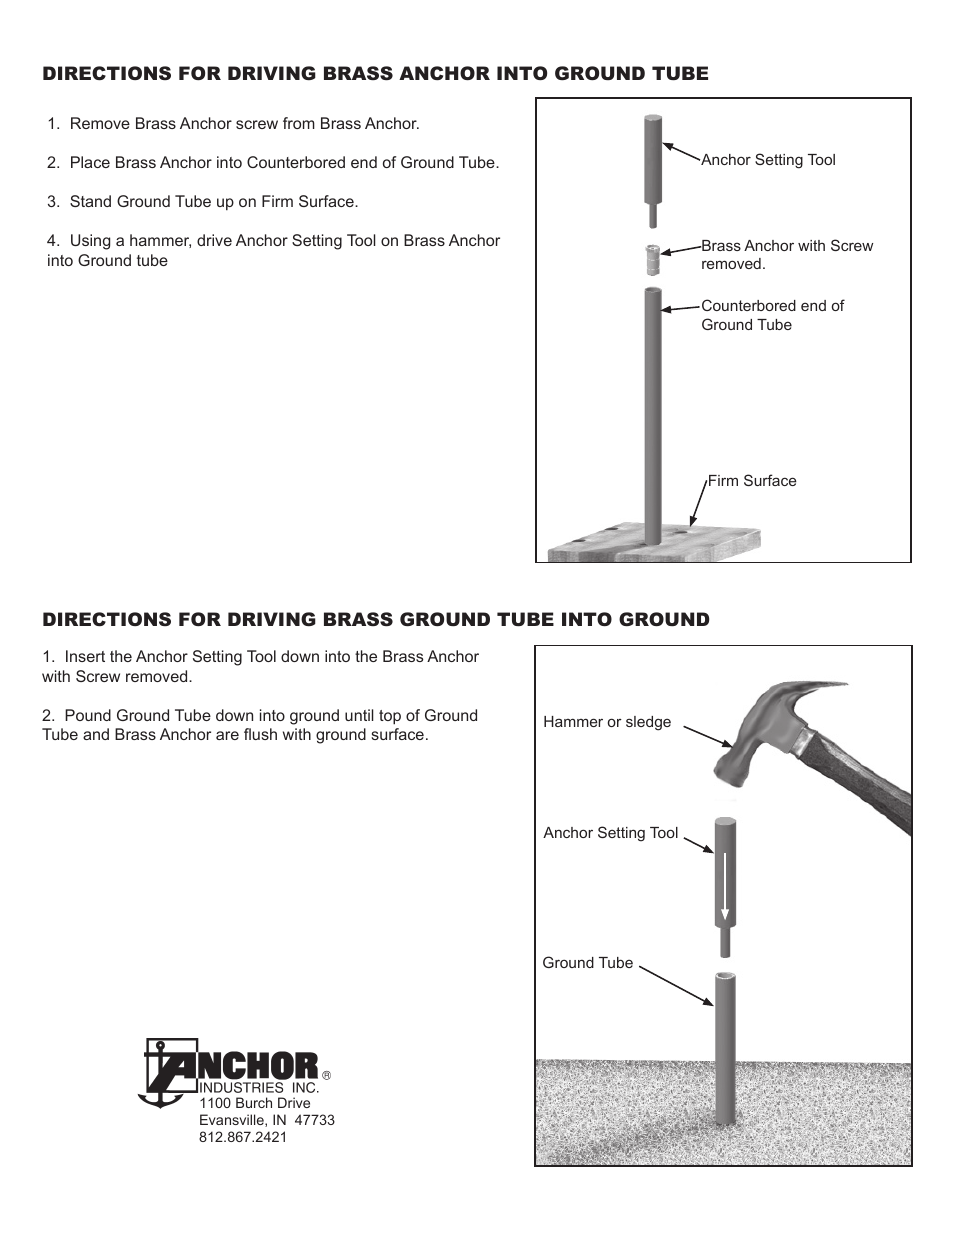 Anchor MESH POOL COVER GROUND TUBES AND STAKES User Manual | Page 2 / 2